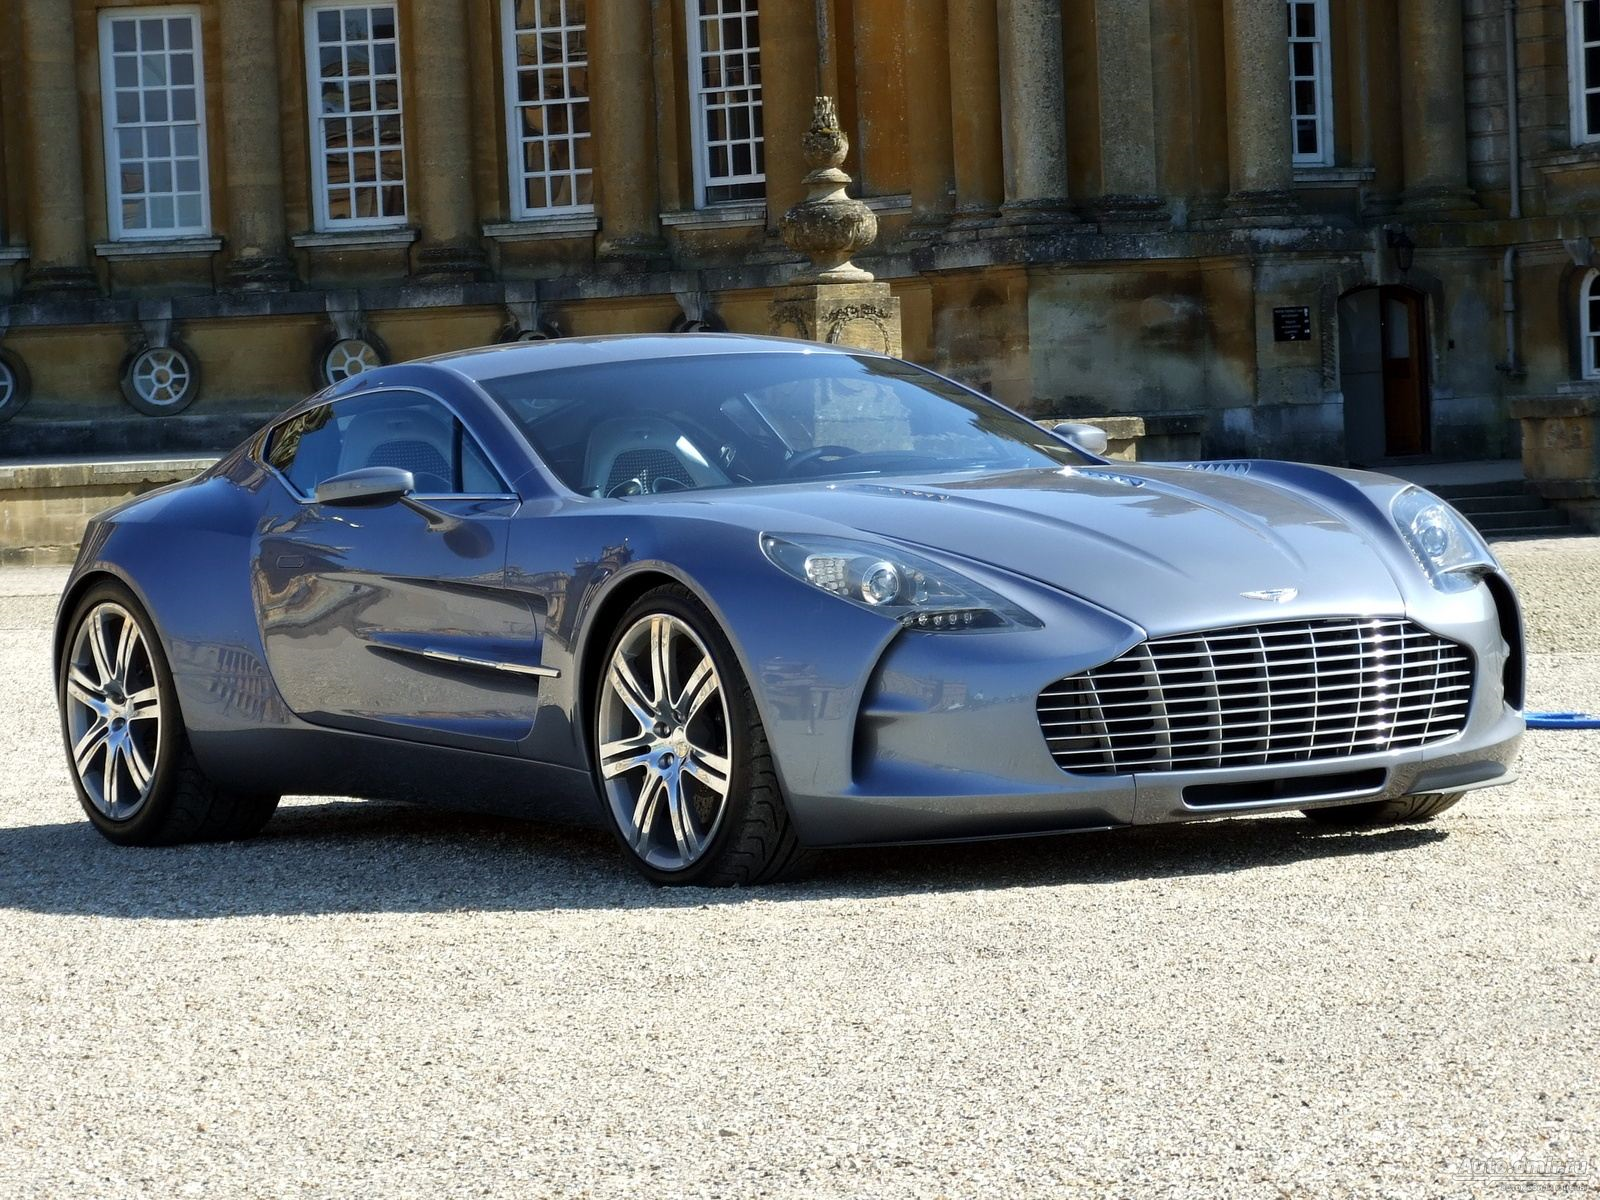 aston martin one 77 wallpapers images photos pictures backgrounds. Black Bedroom Furniture Sets. Home Design Ideas